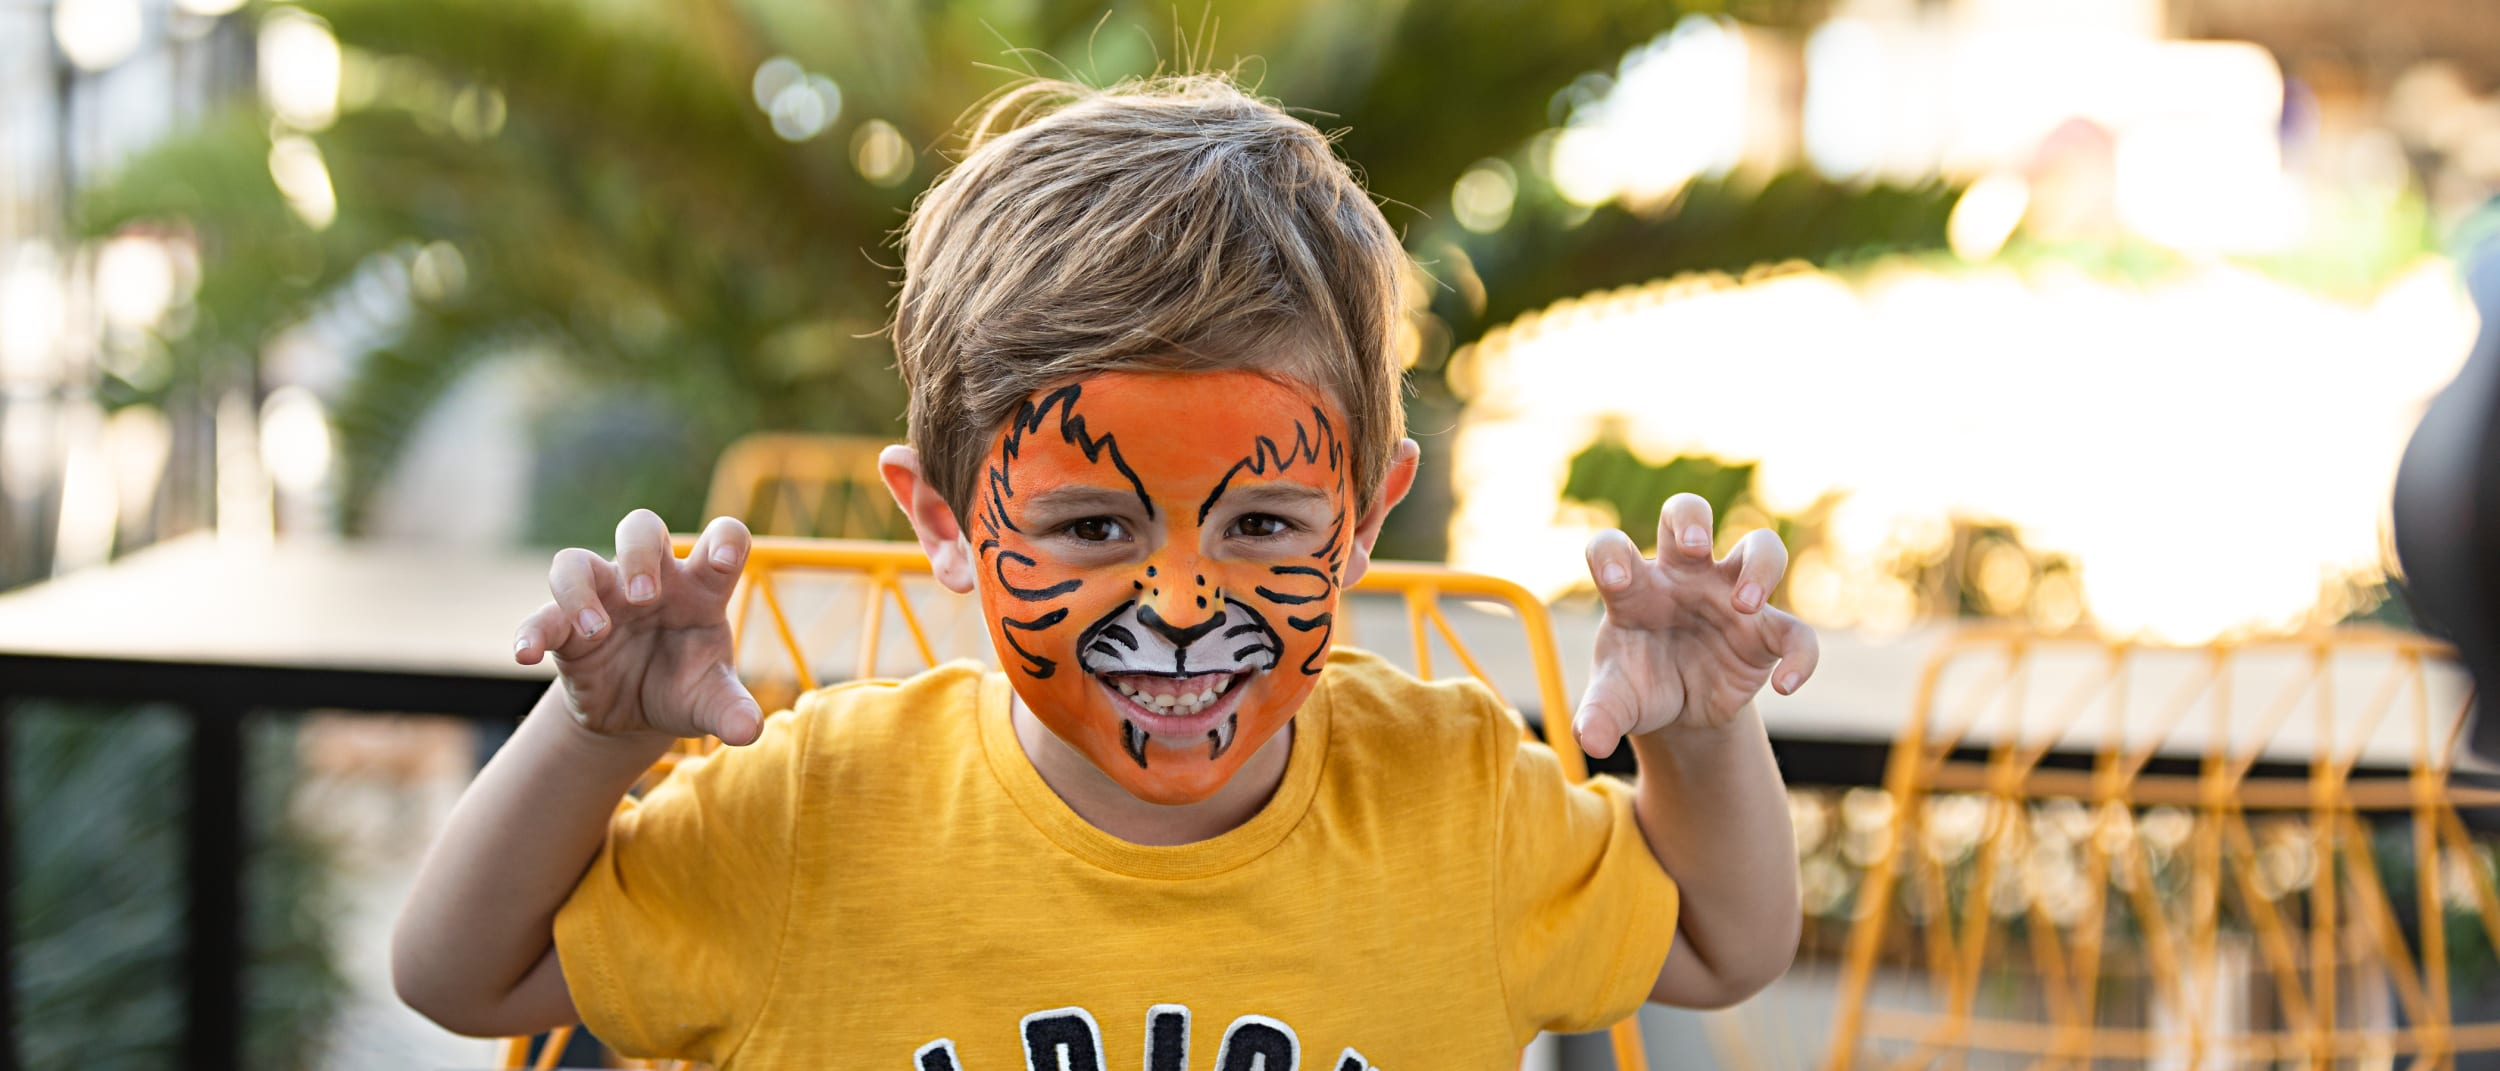 Baby City free face-painting